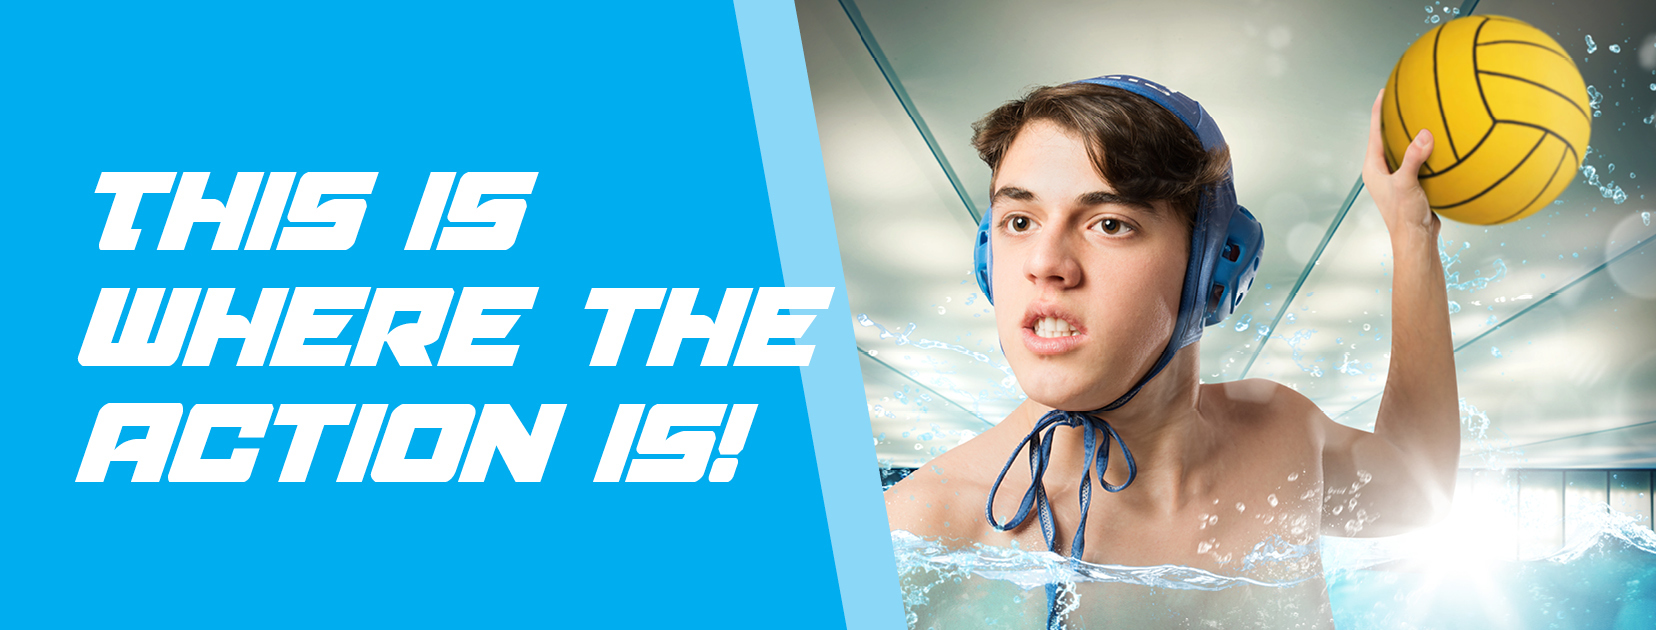 FAC-Water-Polo-Juniors-FB-cover.jpg#asset:5795